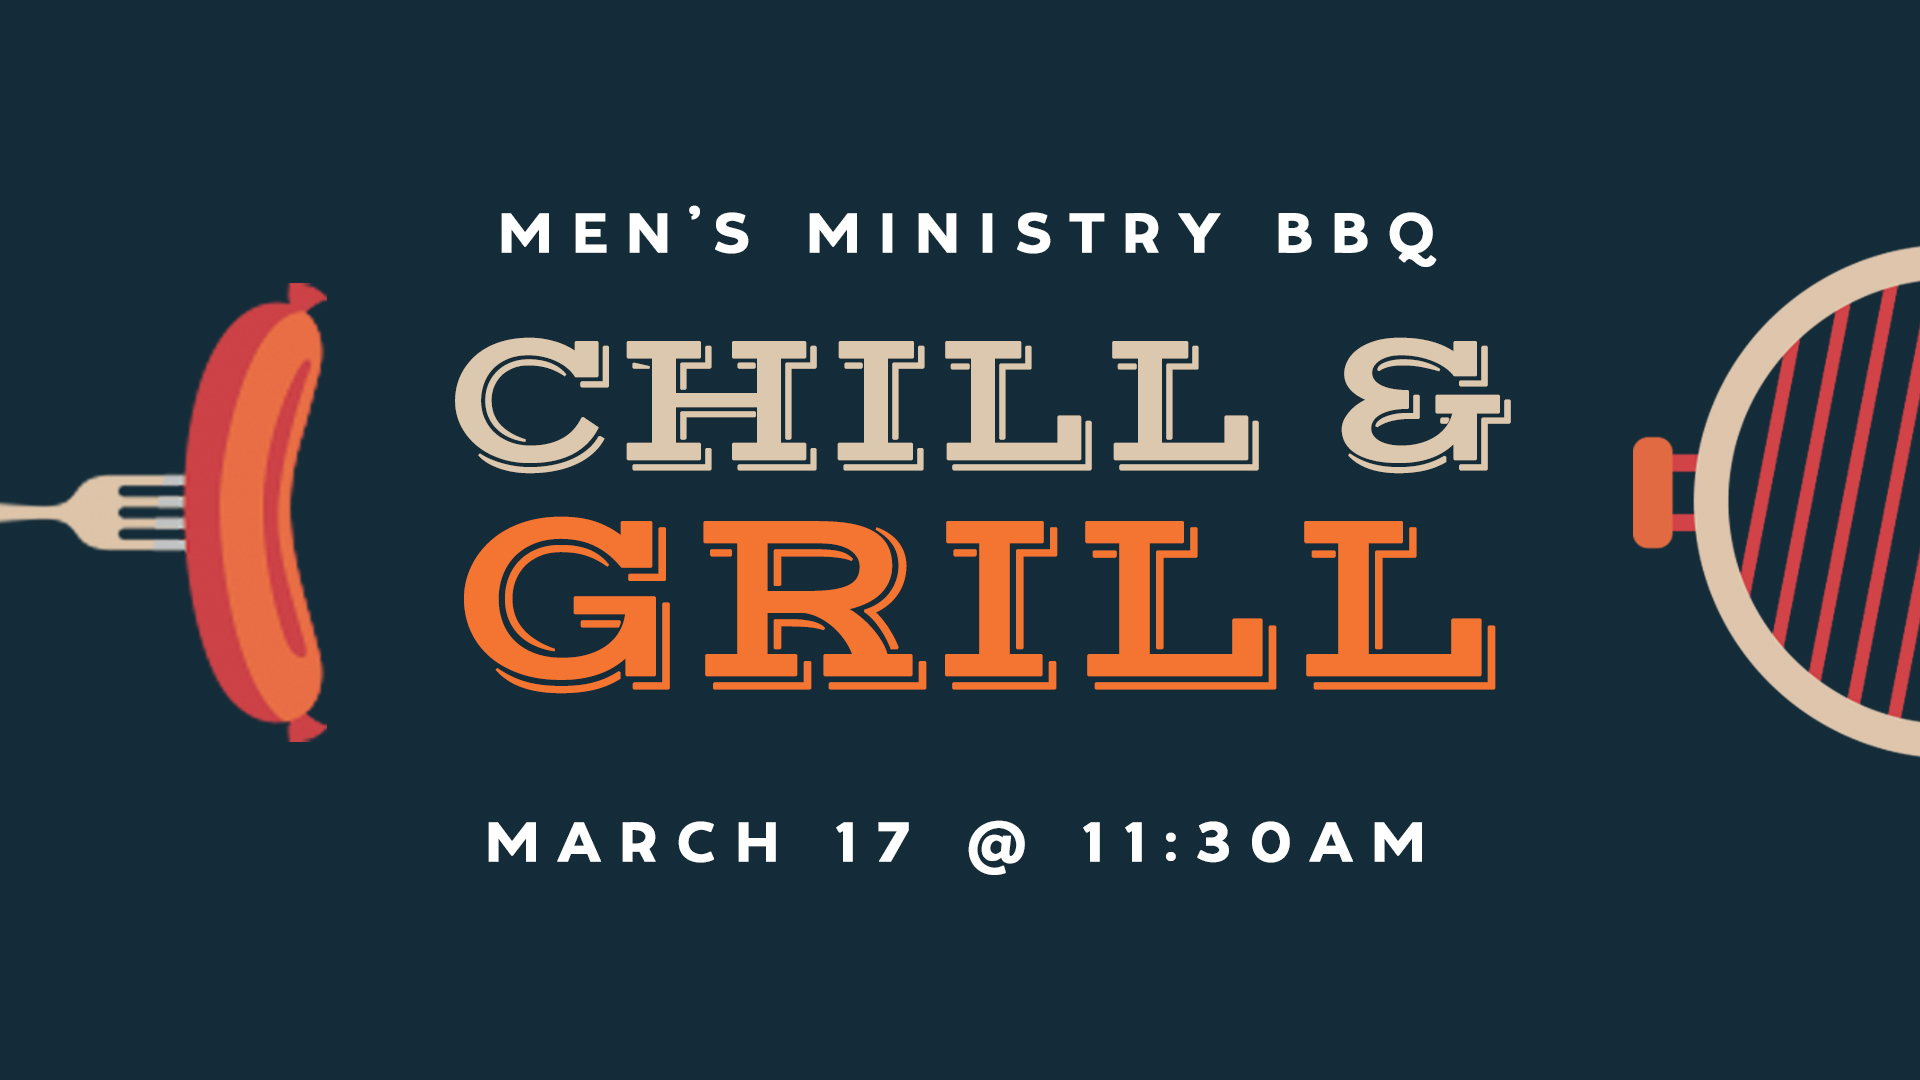 FeaturedImage_mensbbq_chillandgrill3 image